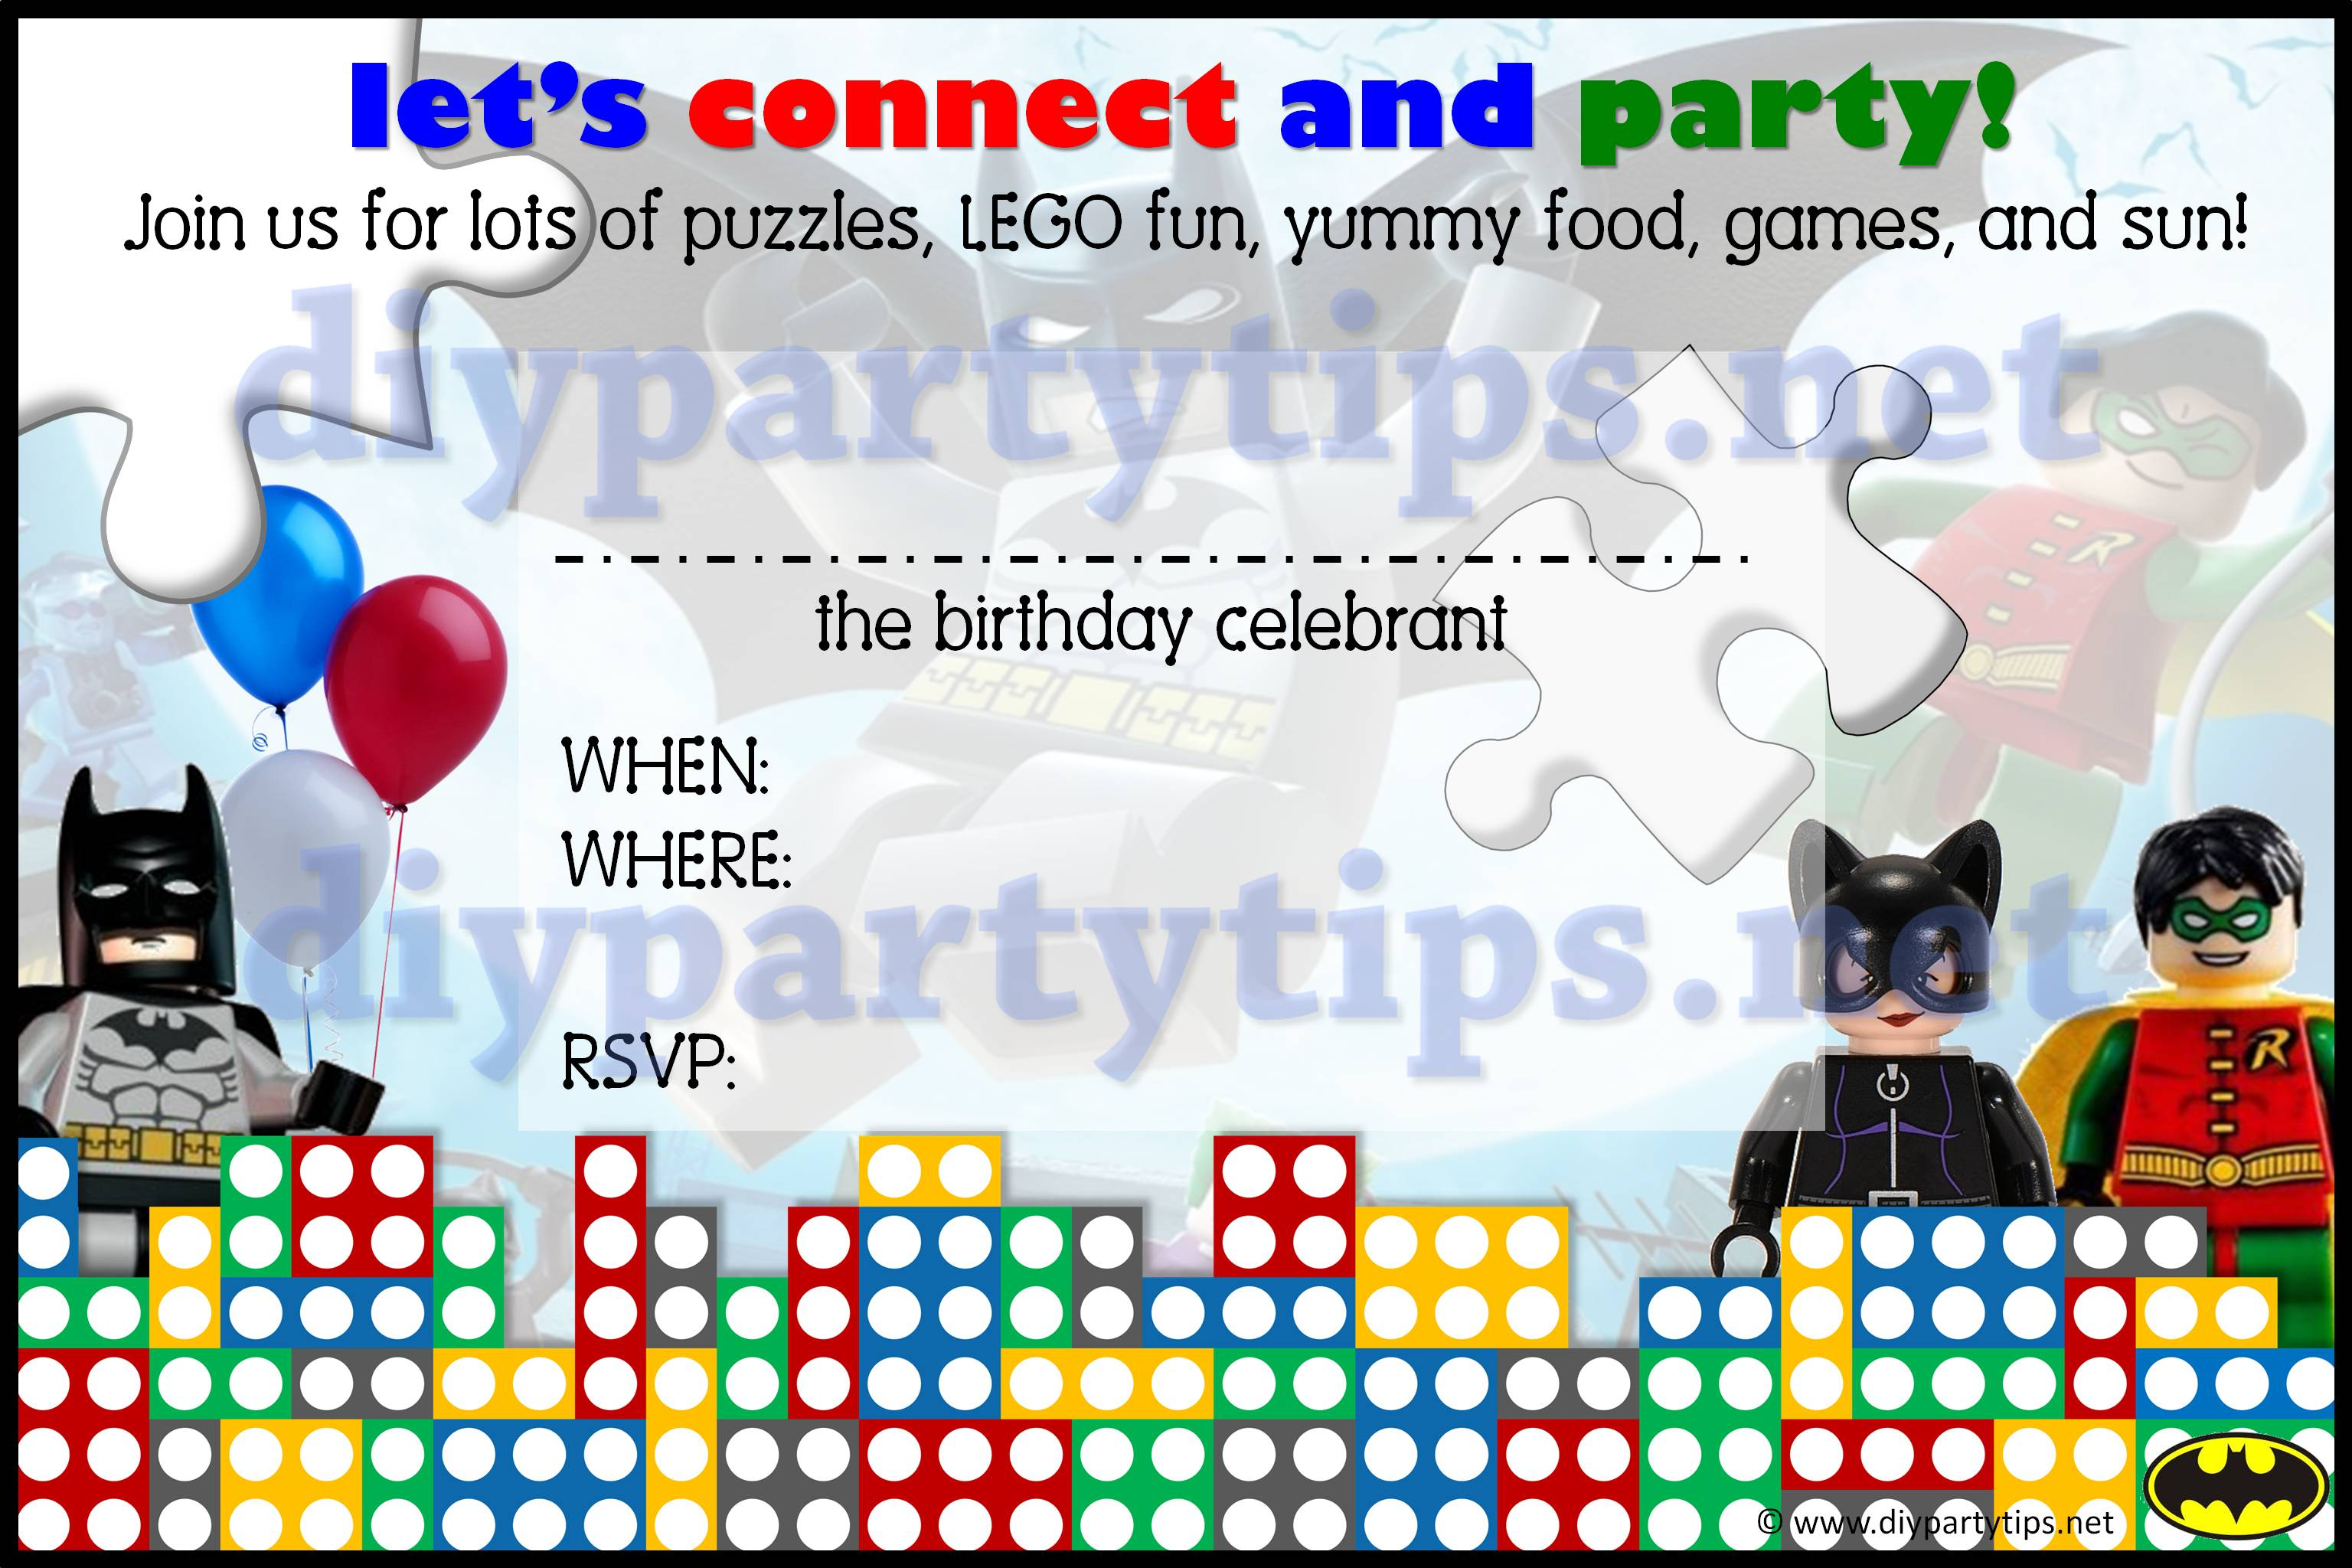 printable lego party invitation lola s diy party tips lego birthday invitation template lola s diy party tips watermark